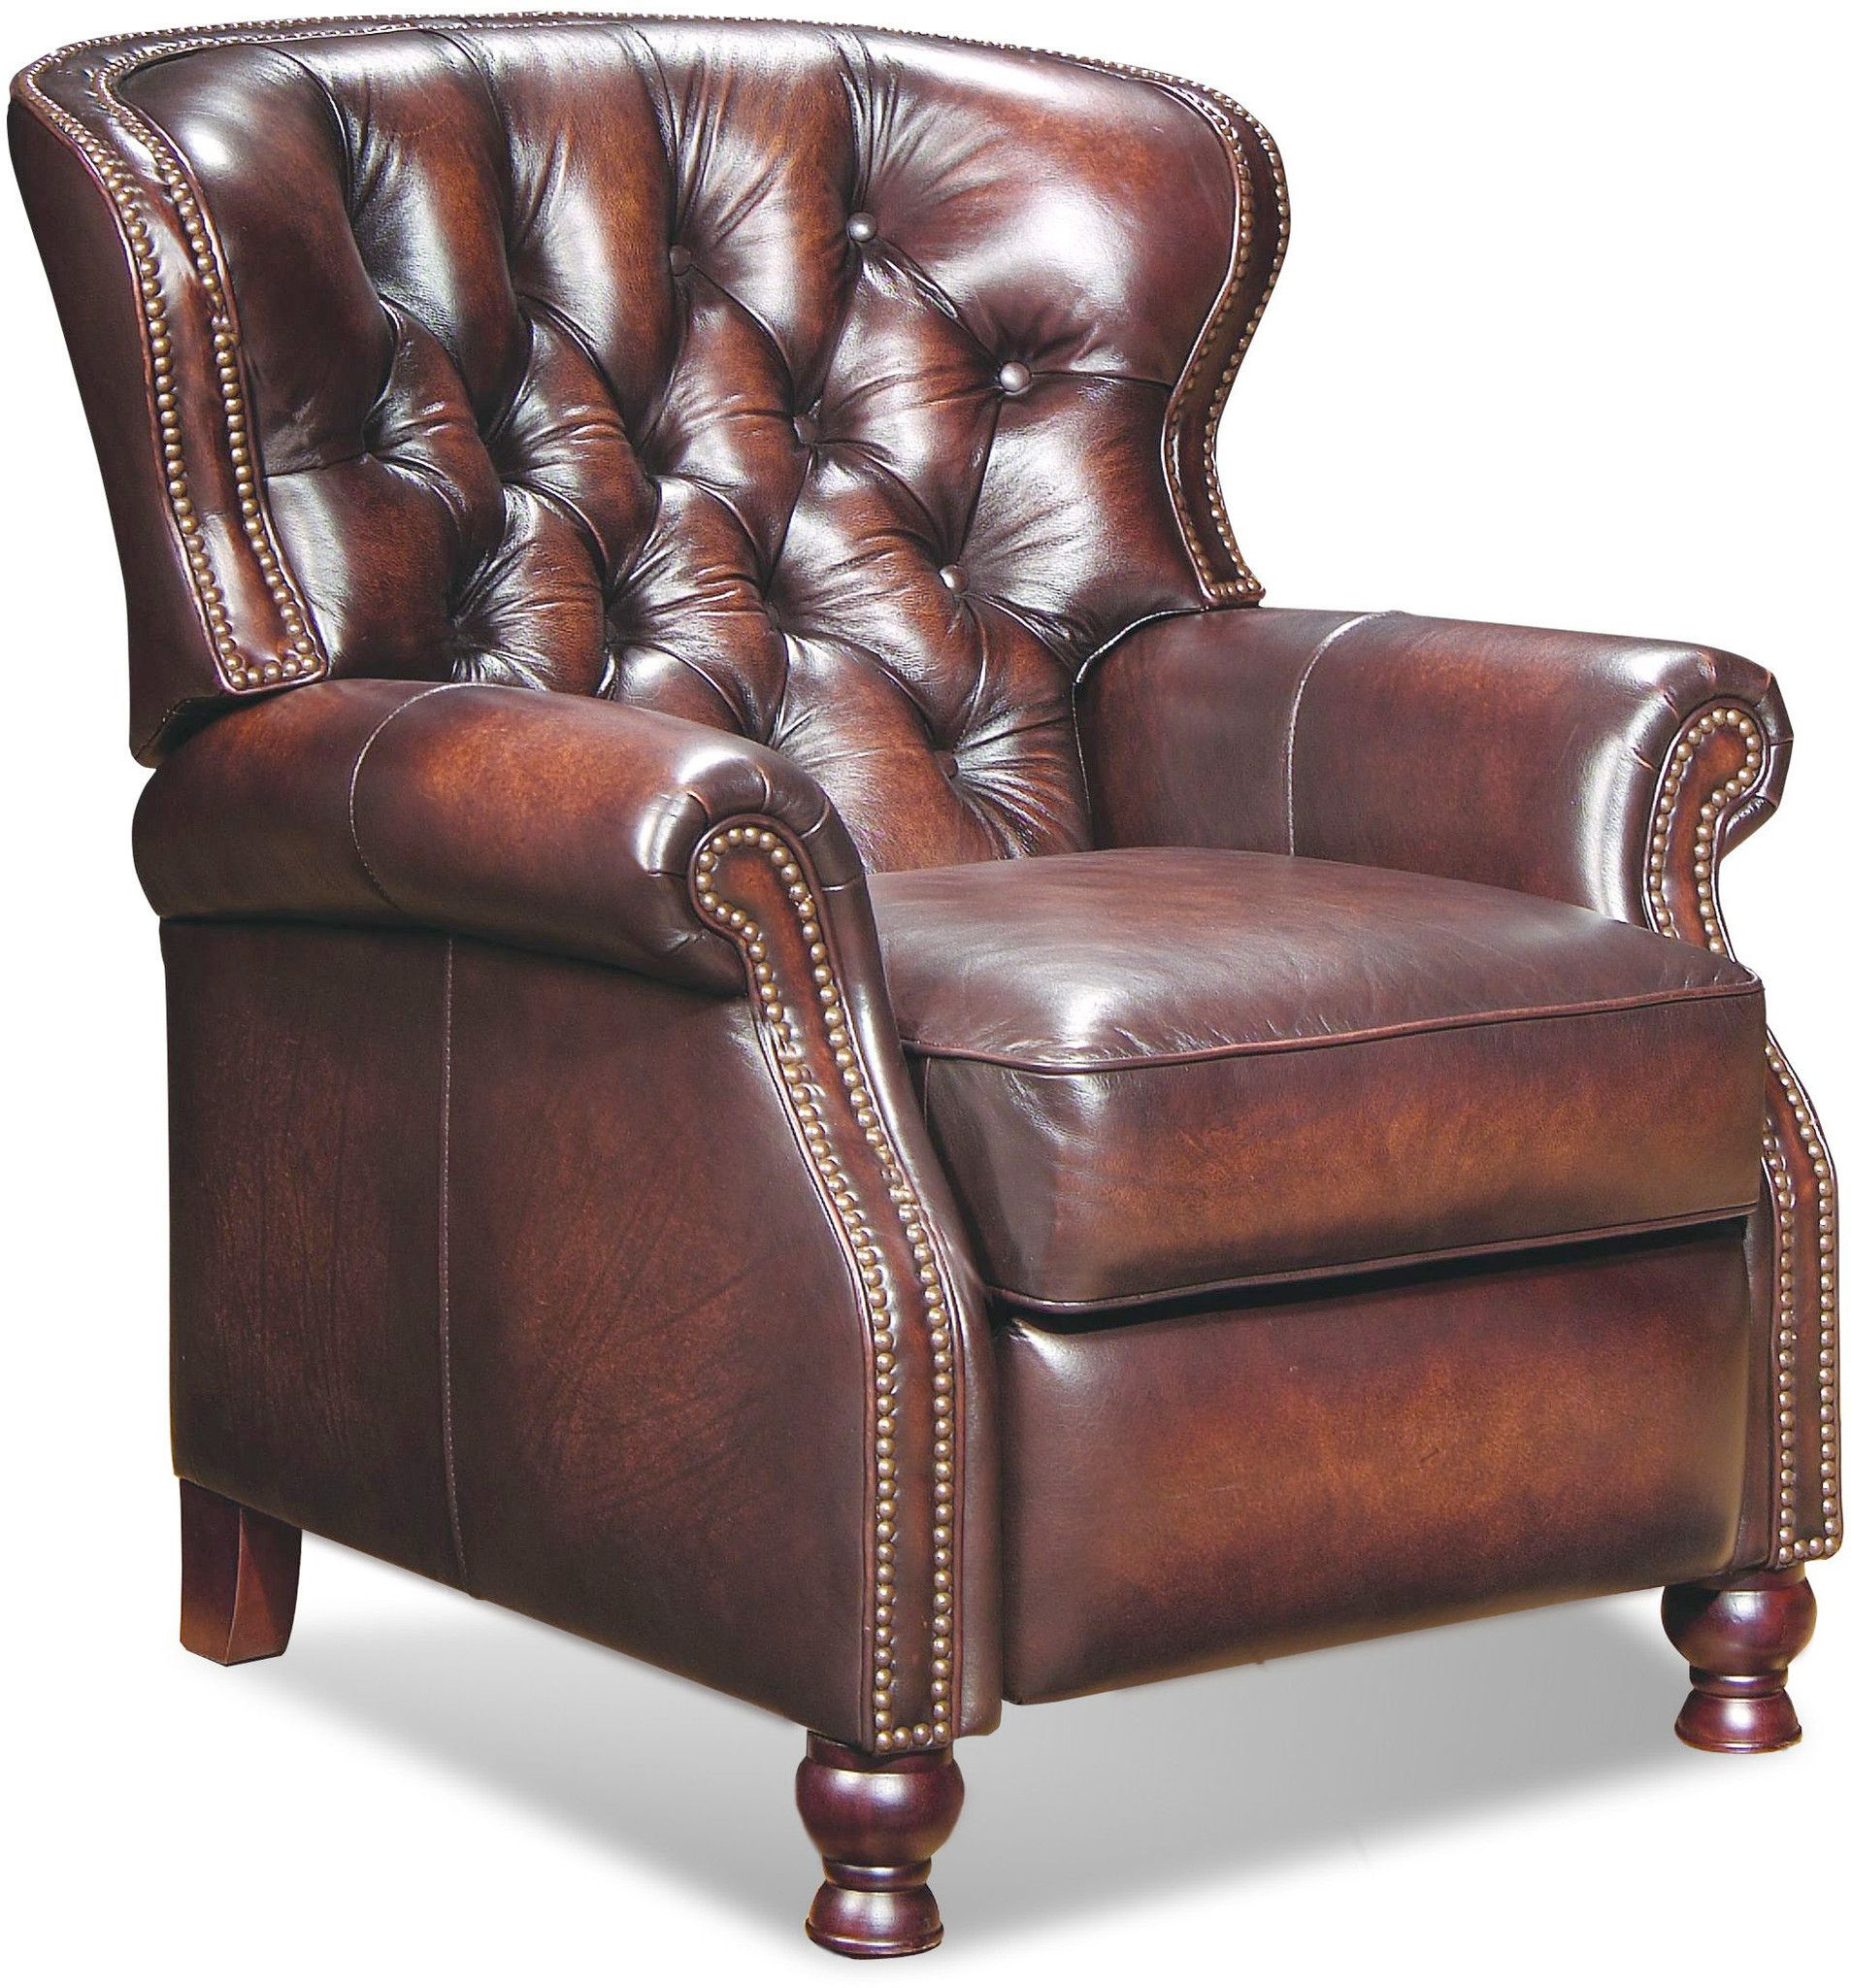 barcalounger vintage reserve presidential ii recliner | our